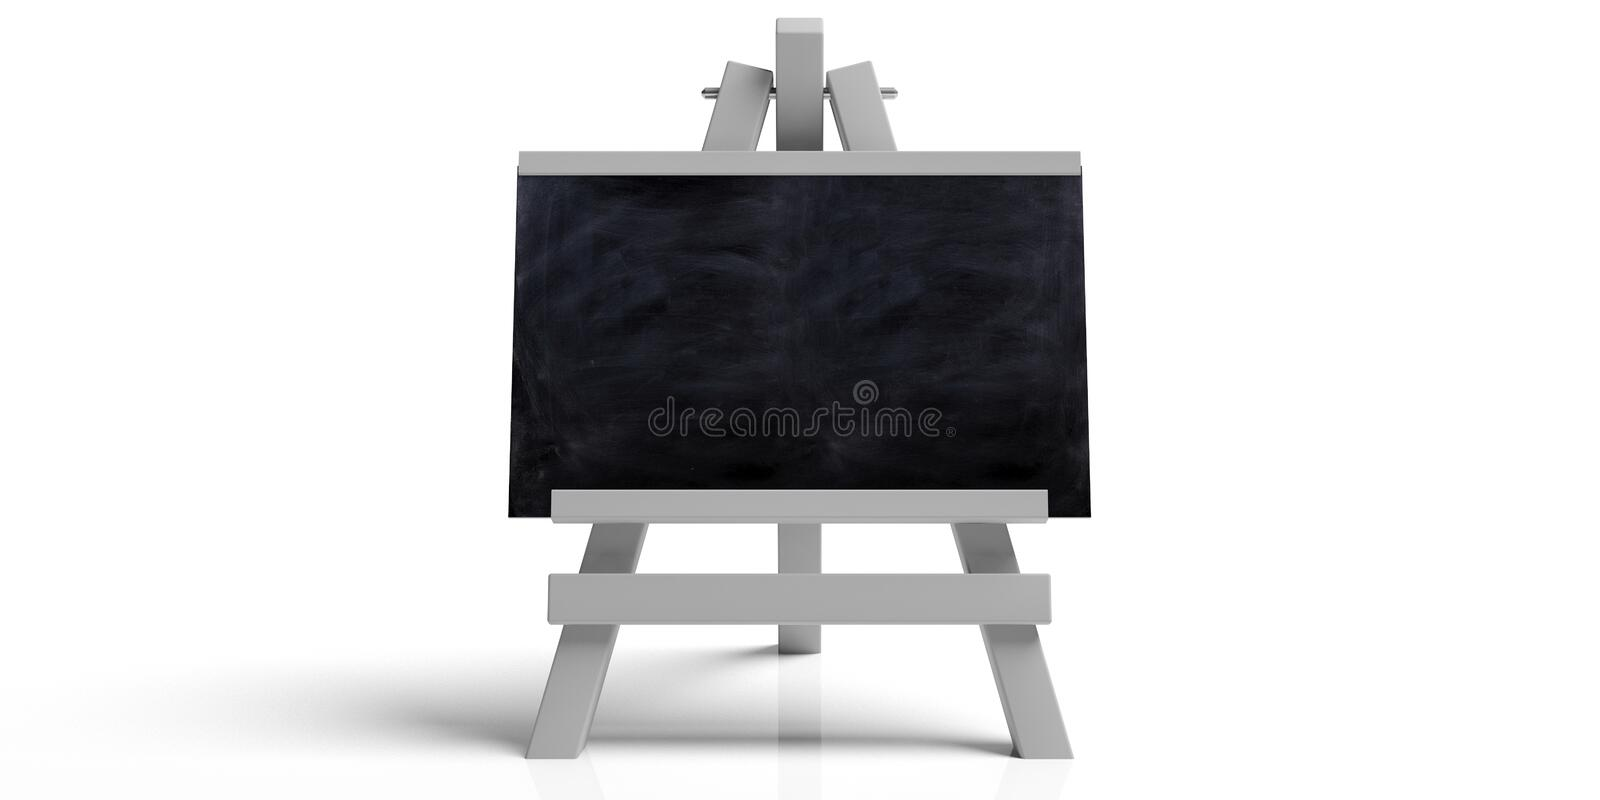 Education concept. Blackboard on white folding wooden easel, isolated against white background with copy space. 3d illustration vector illustration